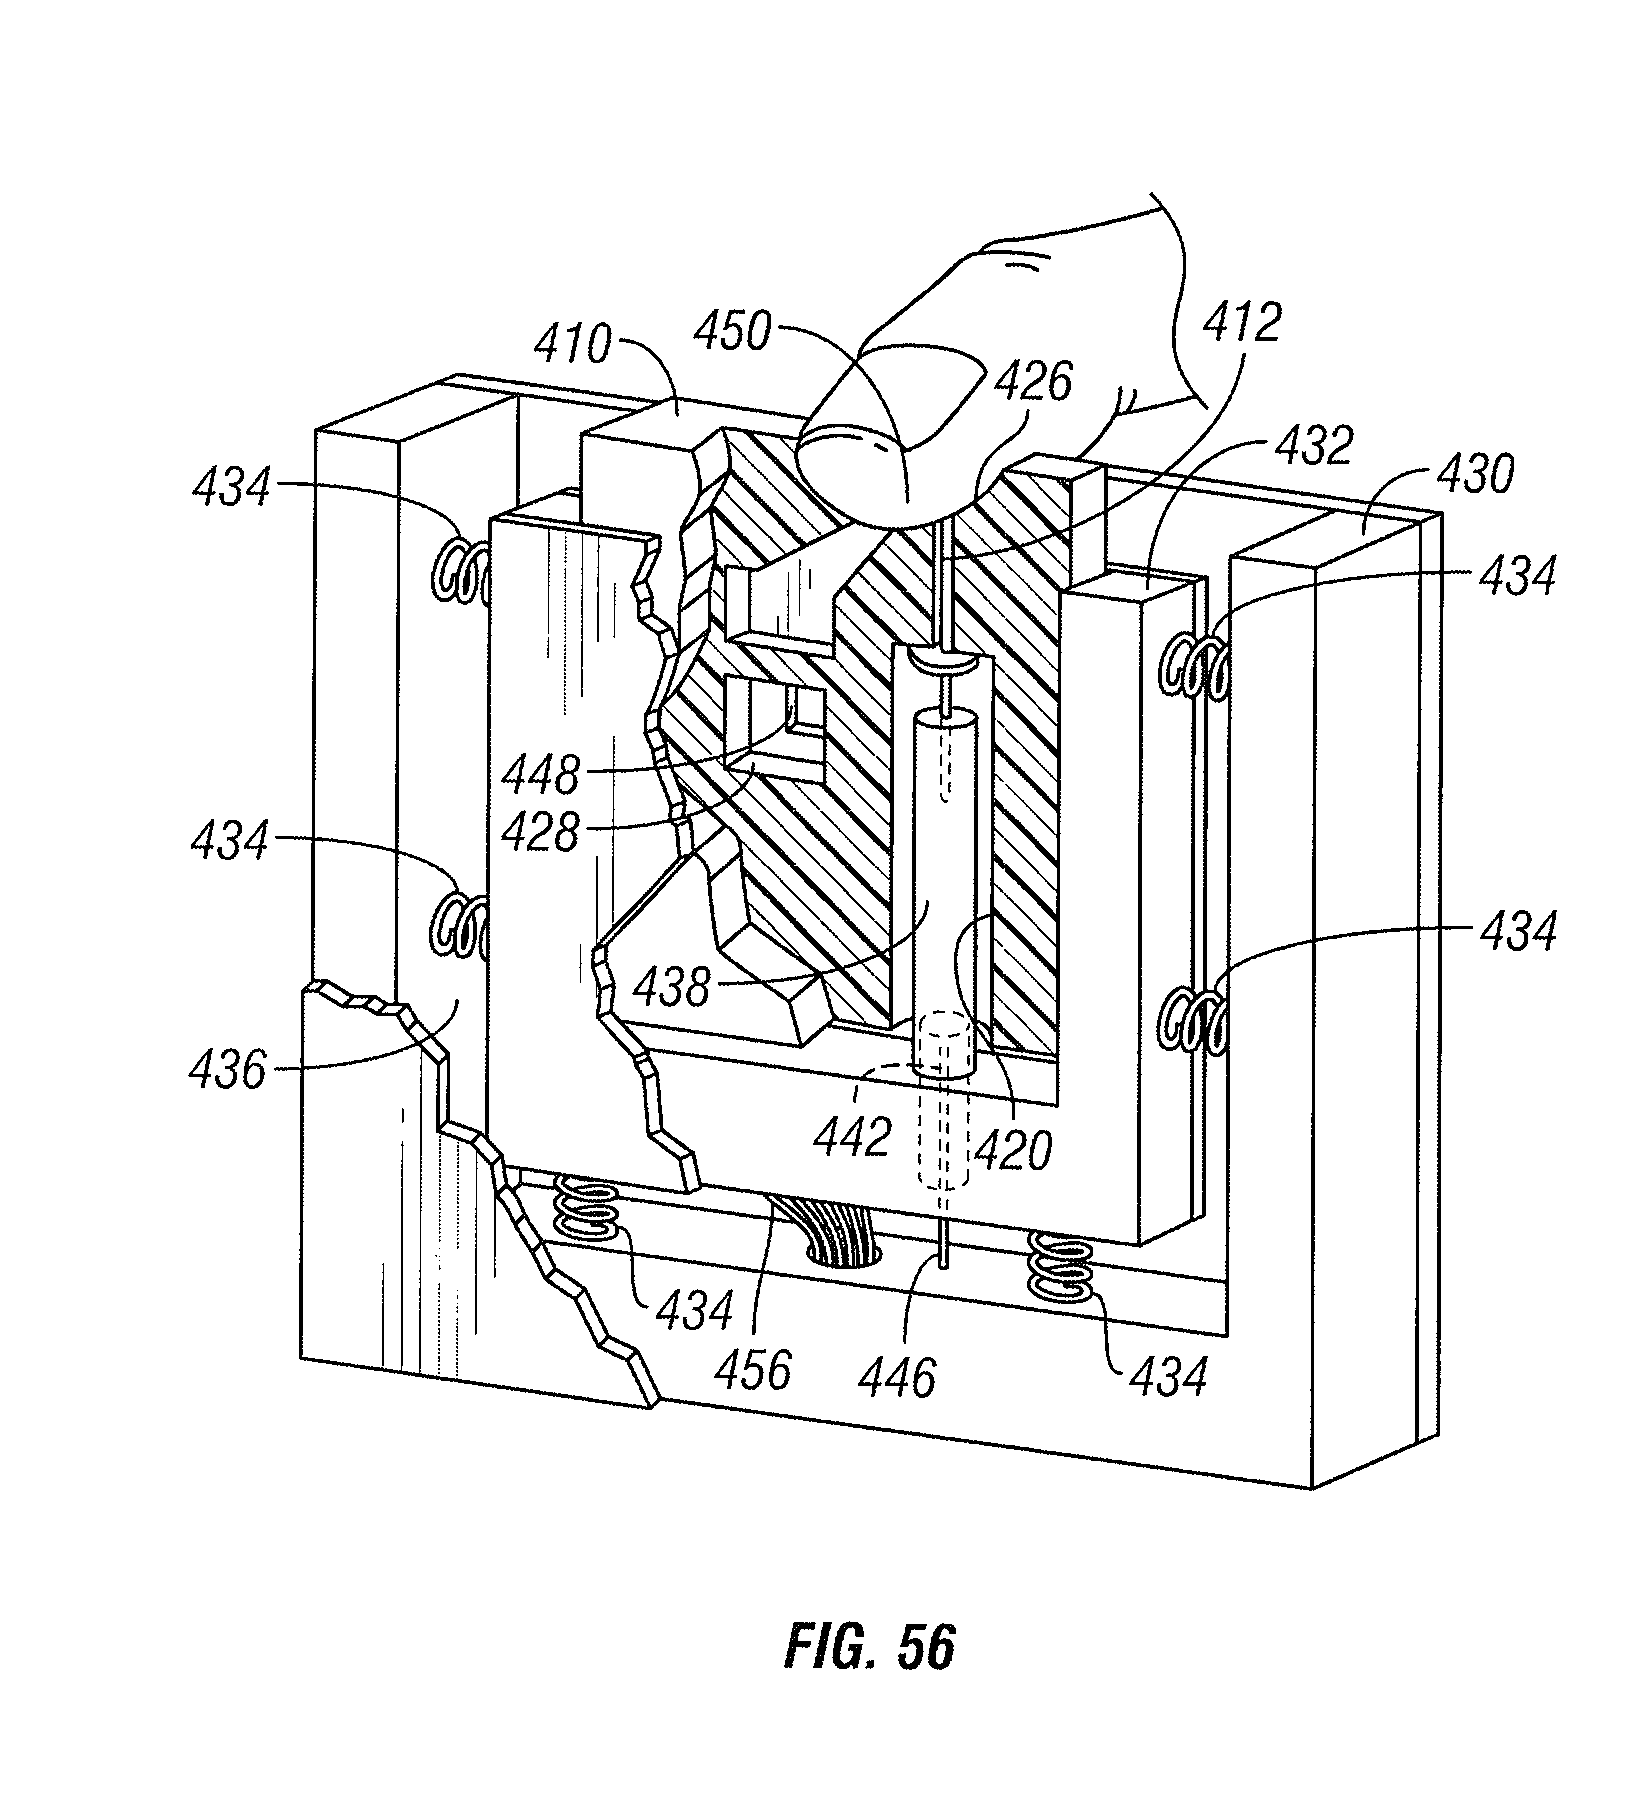 Patent Us 8337421 B2 The Supports Draw Thequantitative Shear And Bending Moment Diagrams Images